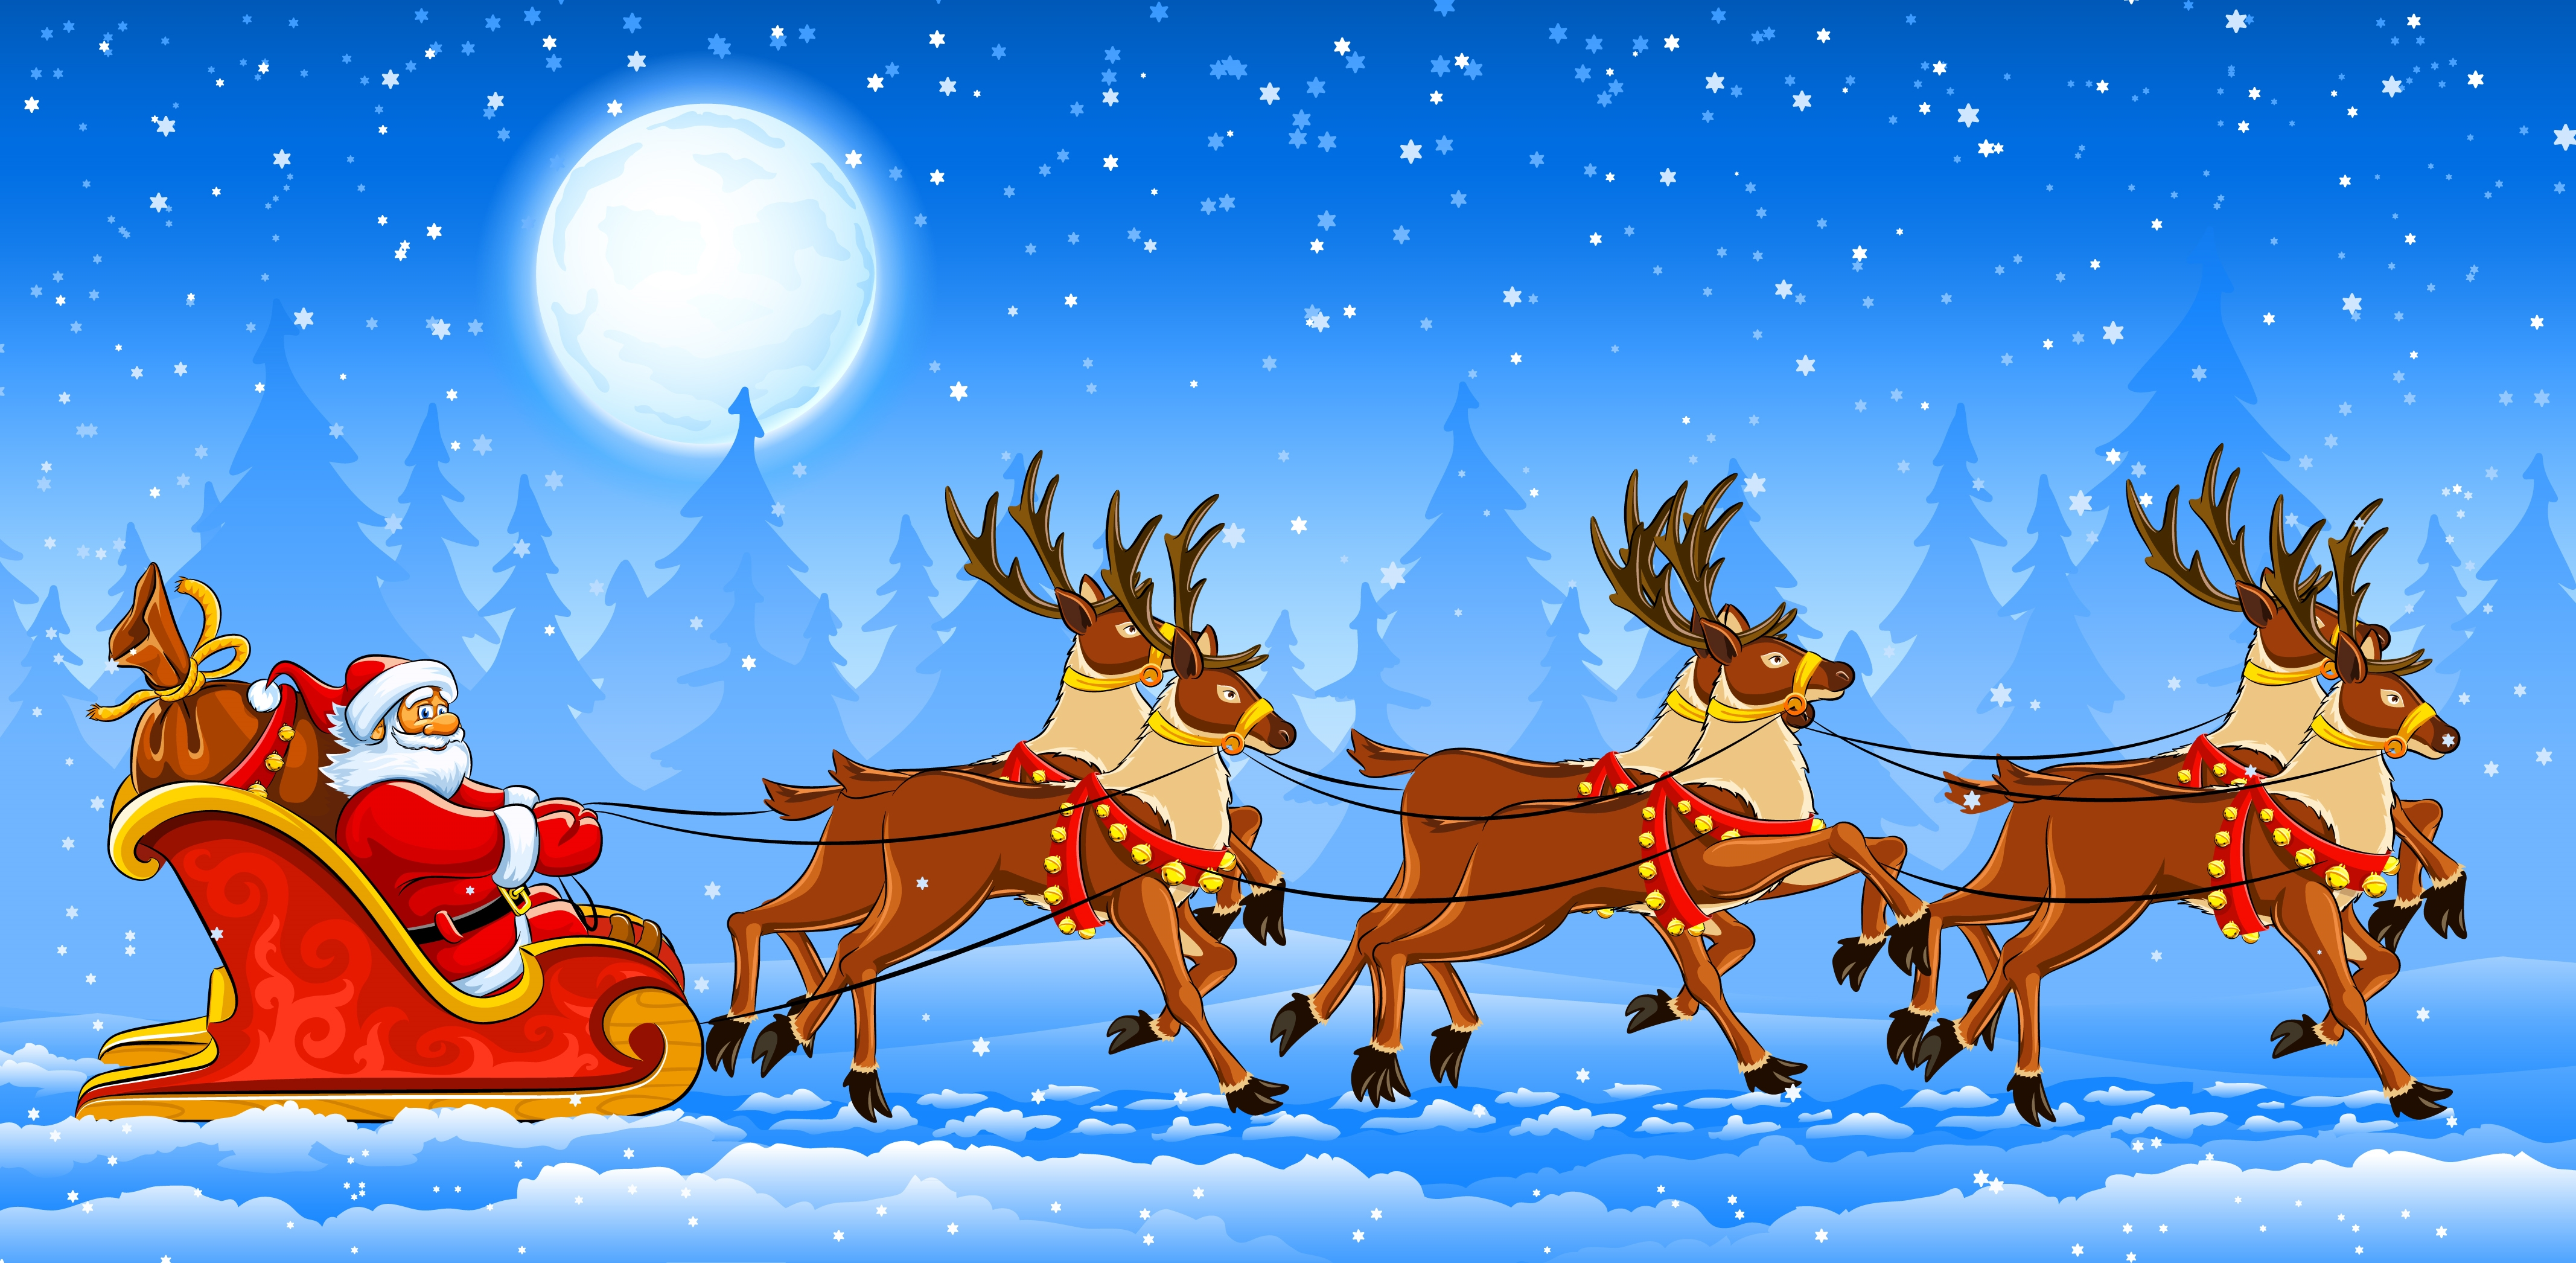 Title :Free Wallpaper Vector Santa Claus Christmas